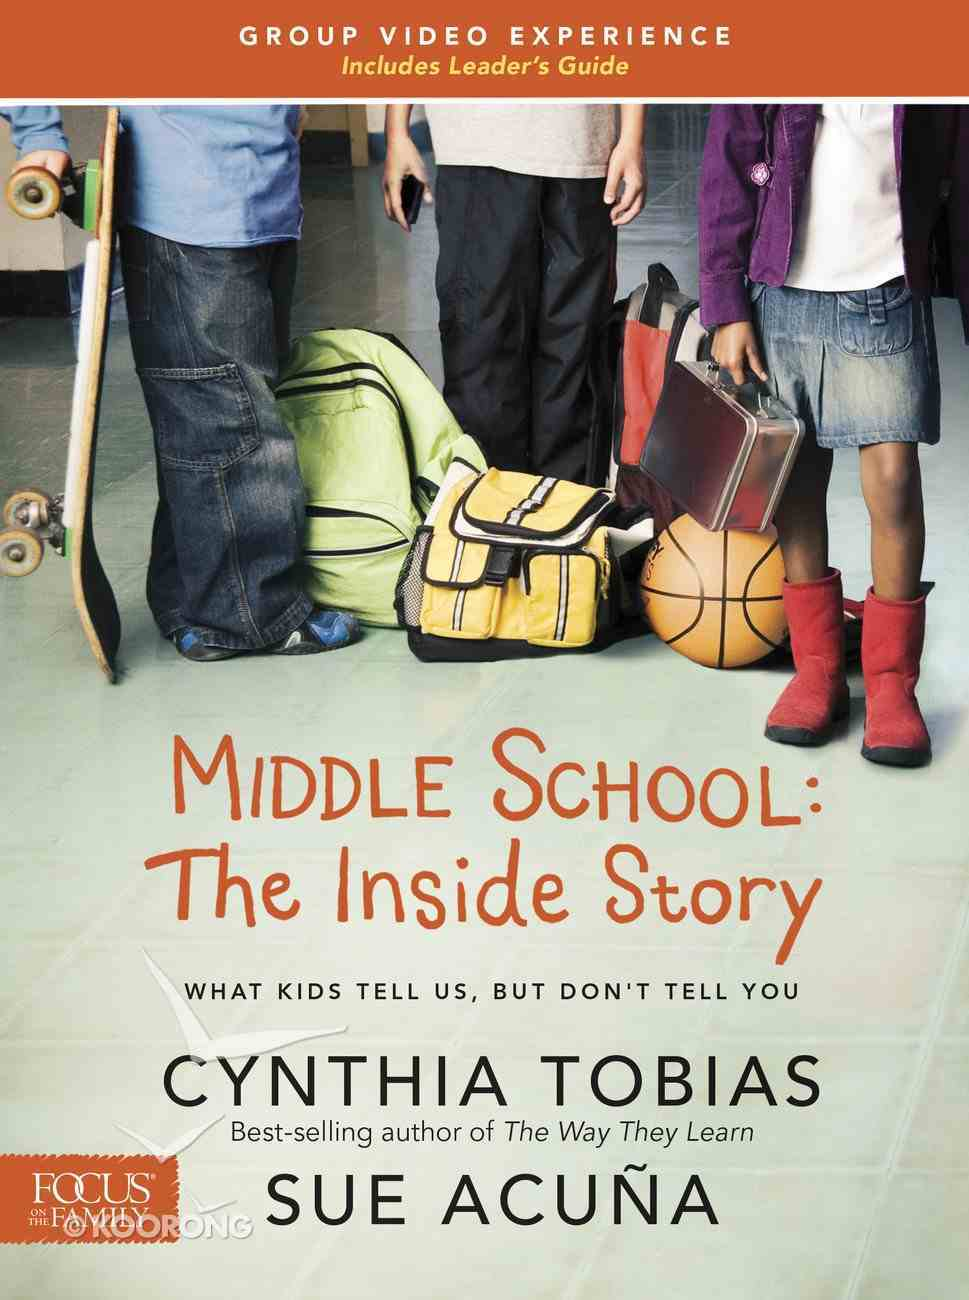 Middle School: The Inside Story Video Experience With Leader's Guide + DVD DVD